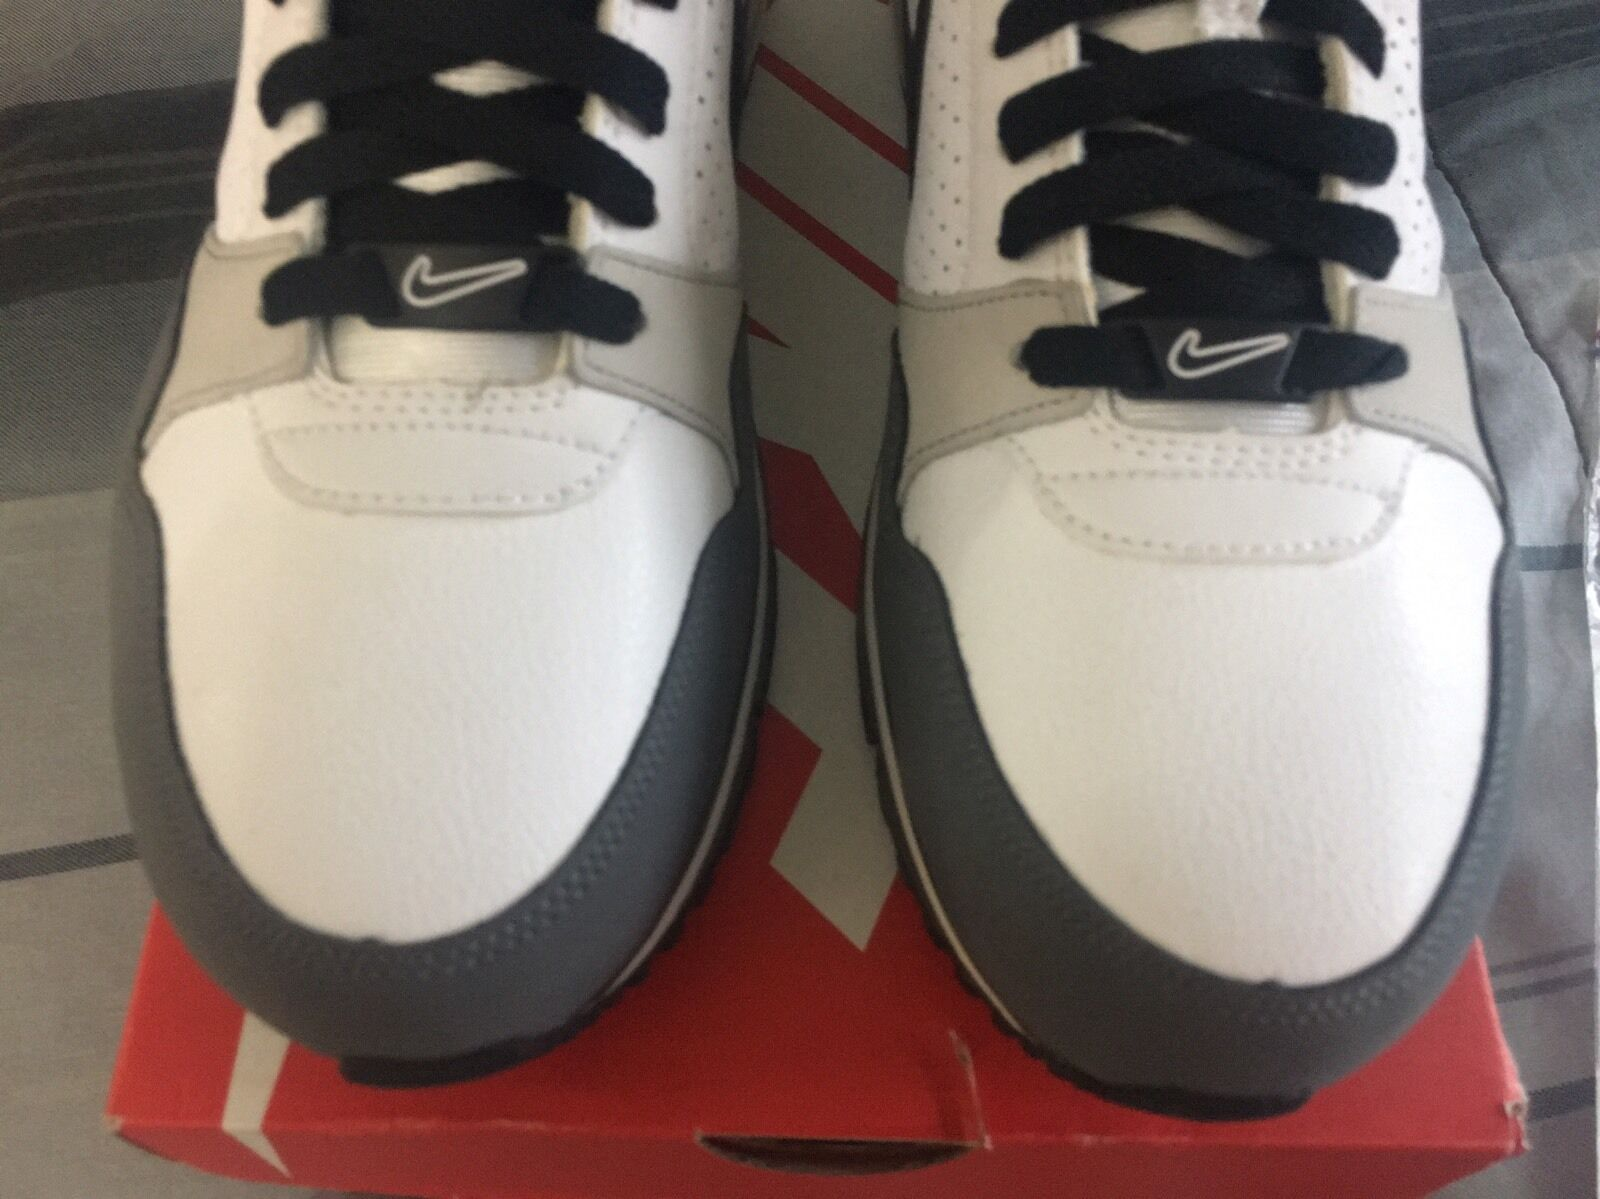 c30dad685f66 2009 Nike Air T-Zone No Look Look Slam Dunk Contest Sample ...